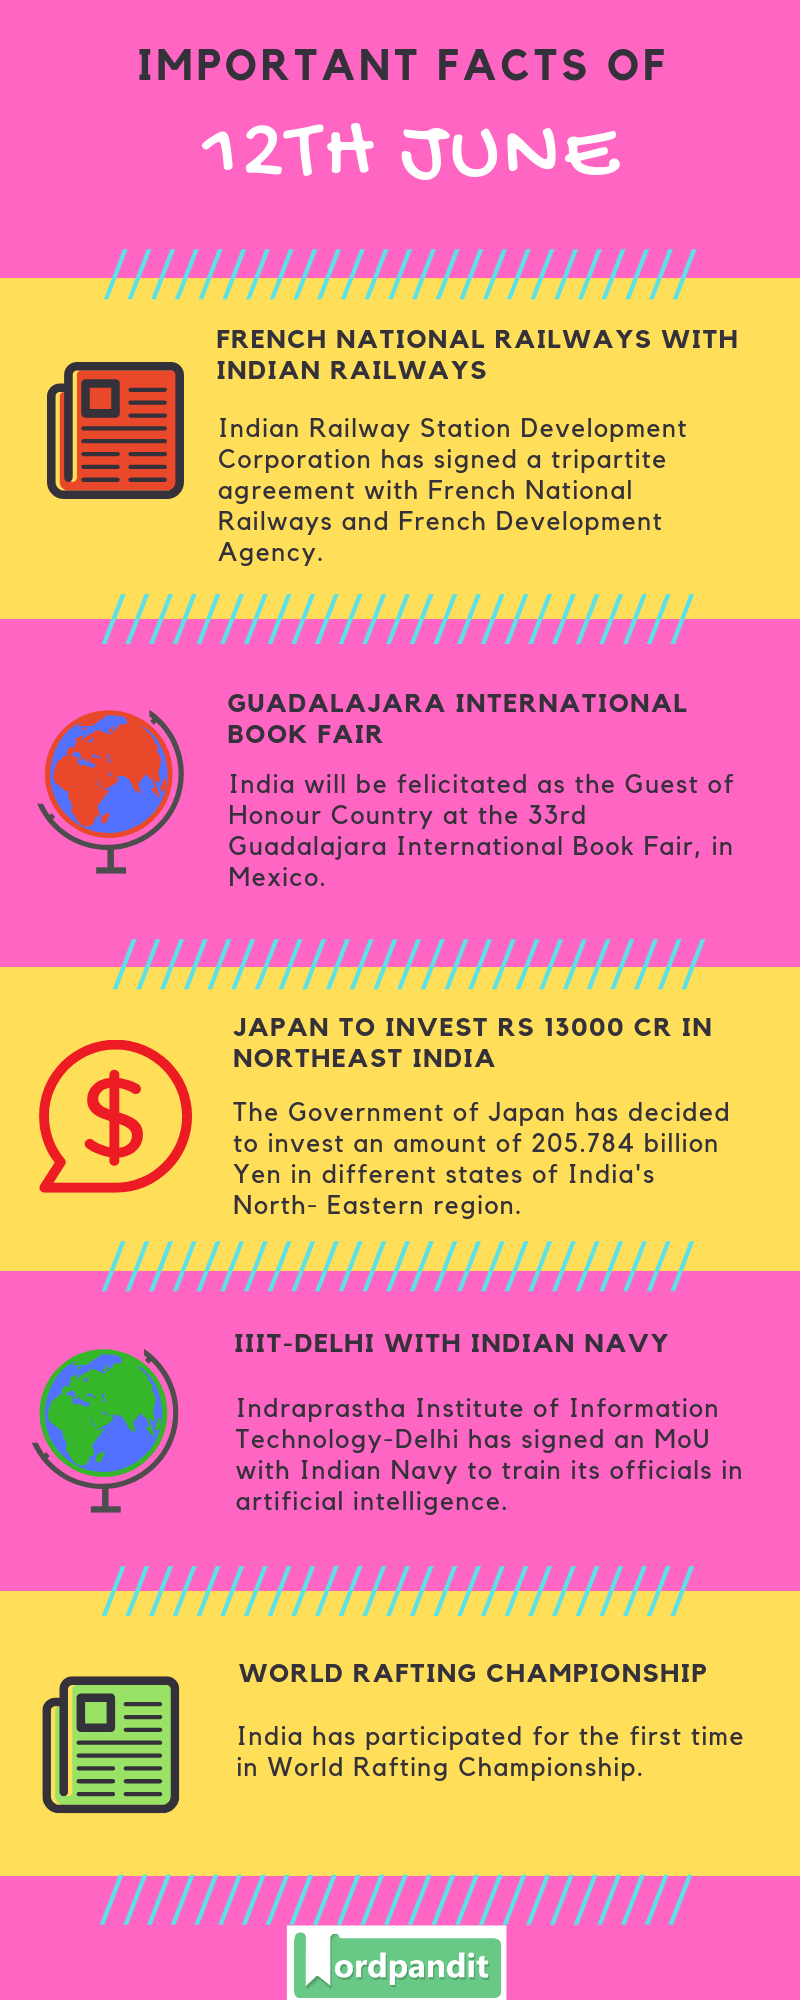 Daily Current Affairs 12 June 2019 Current Affairs Quiz 12 June 2019 Current Affairs Infographic